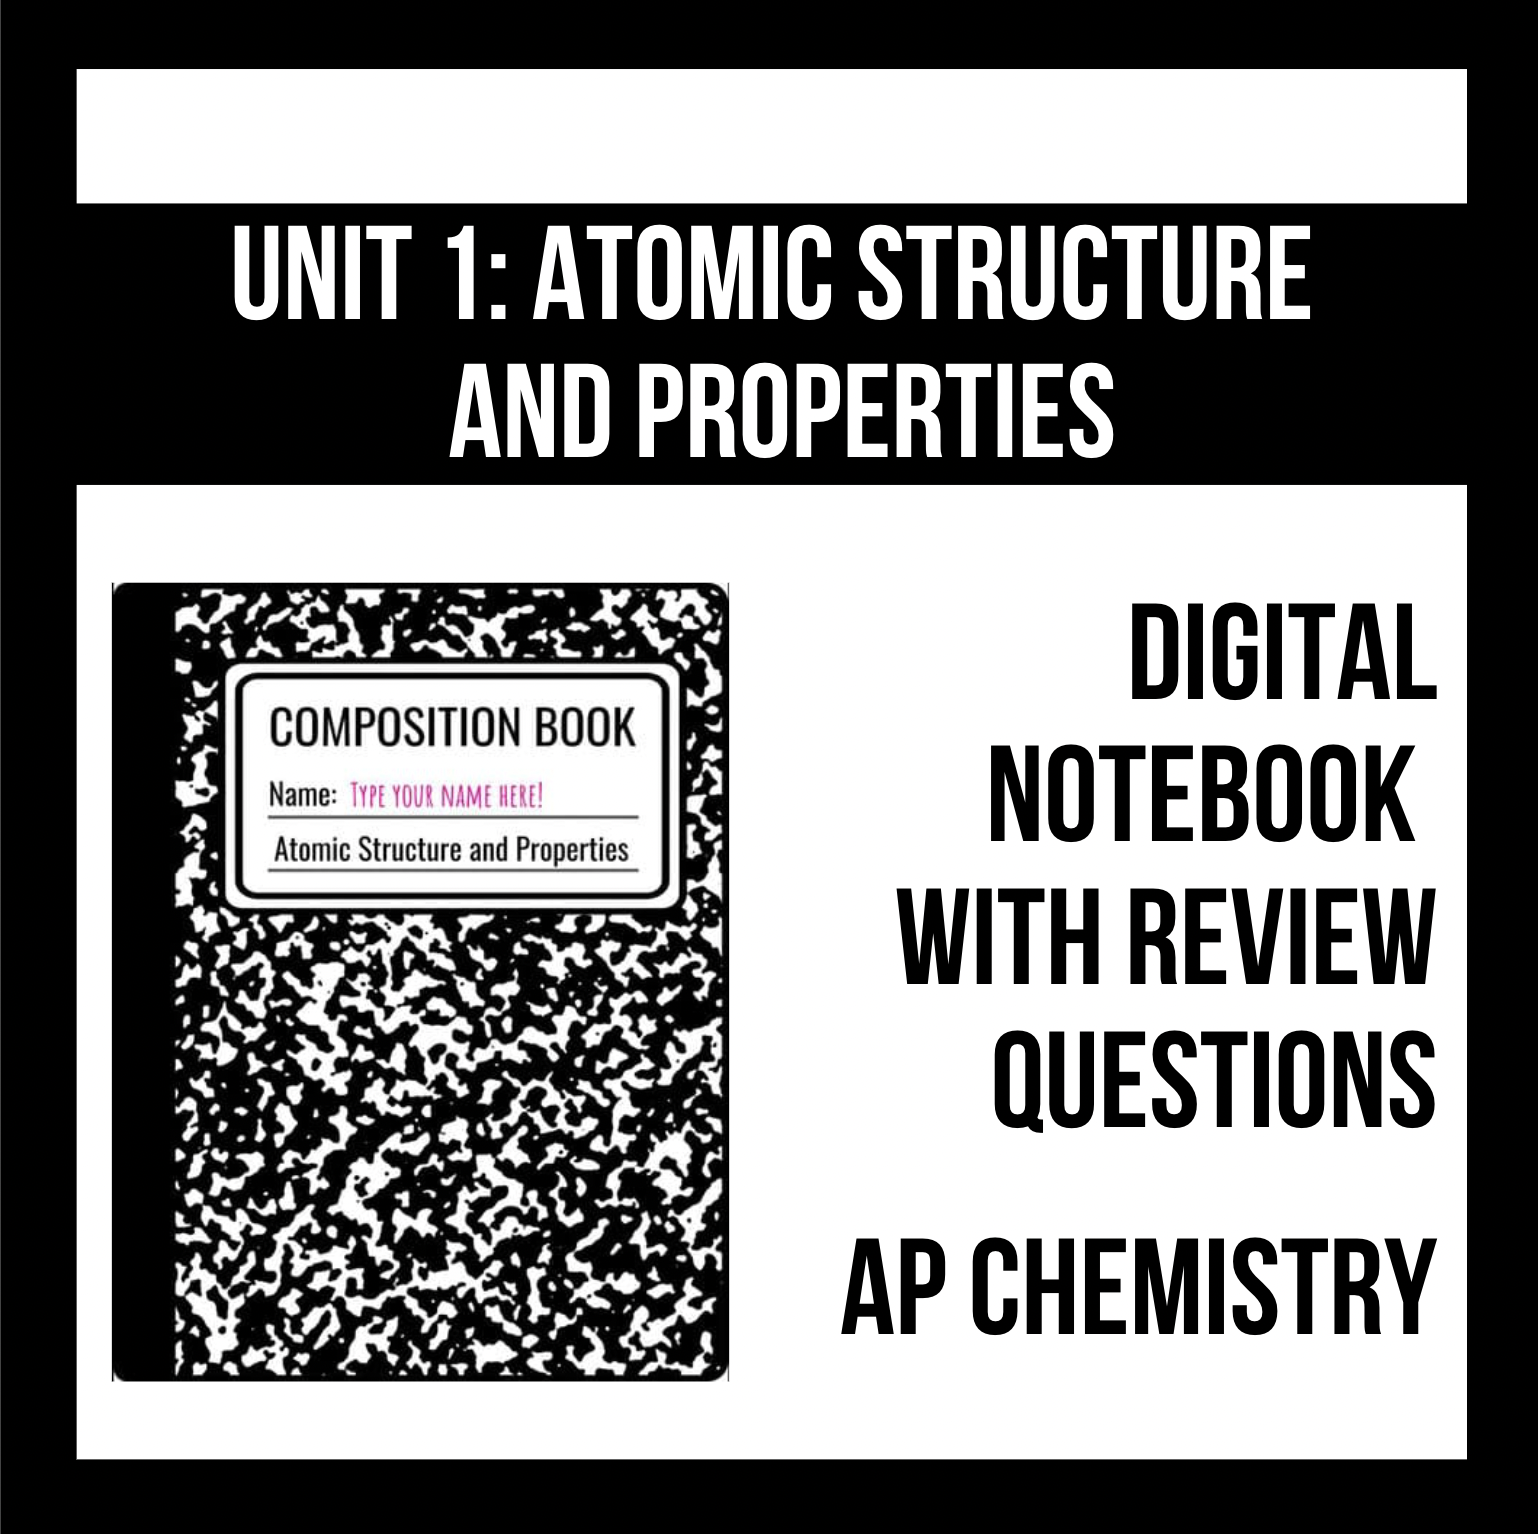 Unit 1: Atomic Structure and Properties